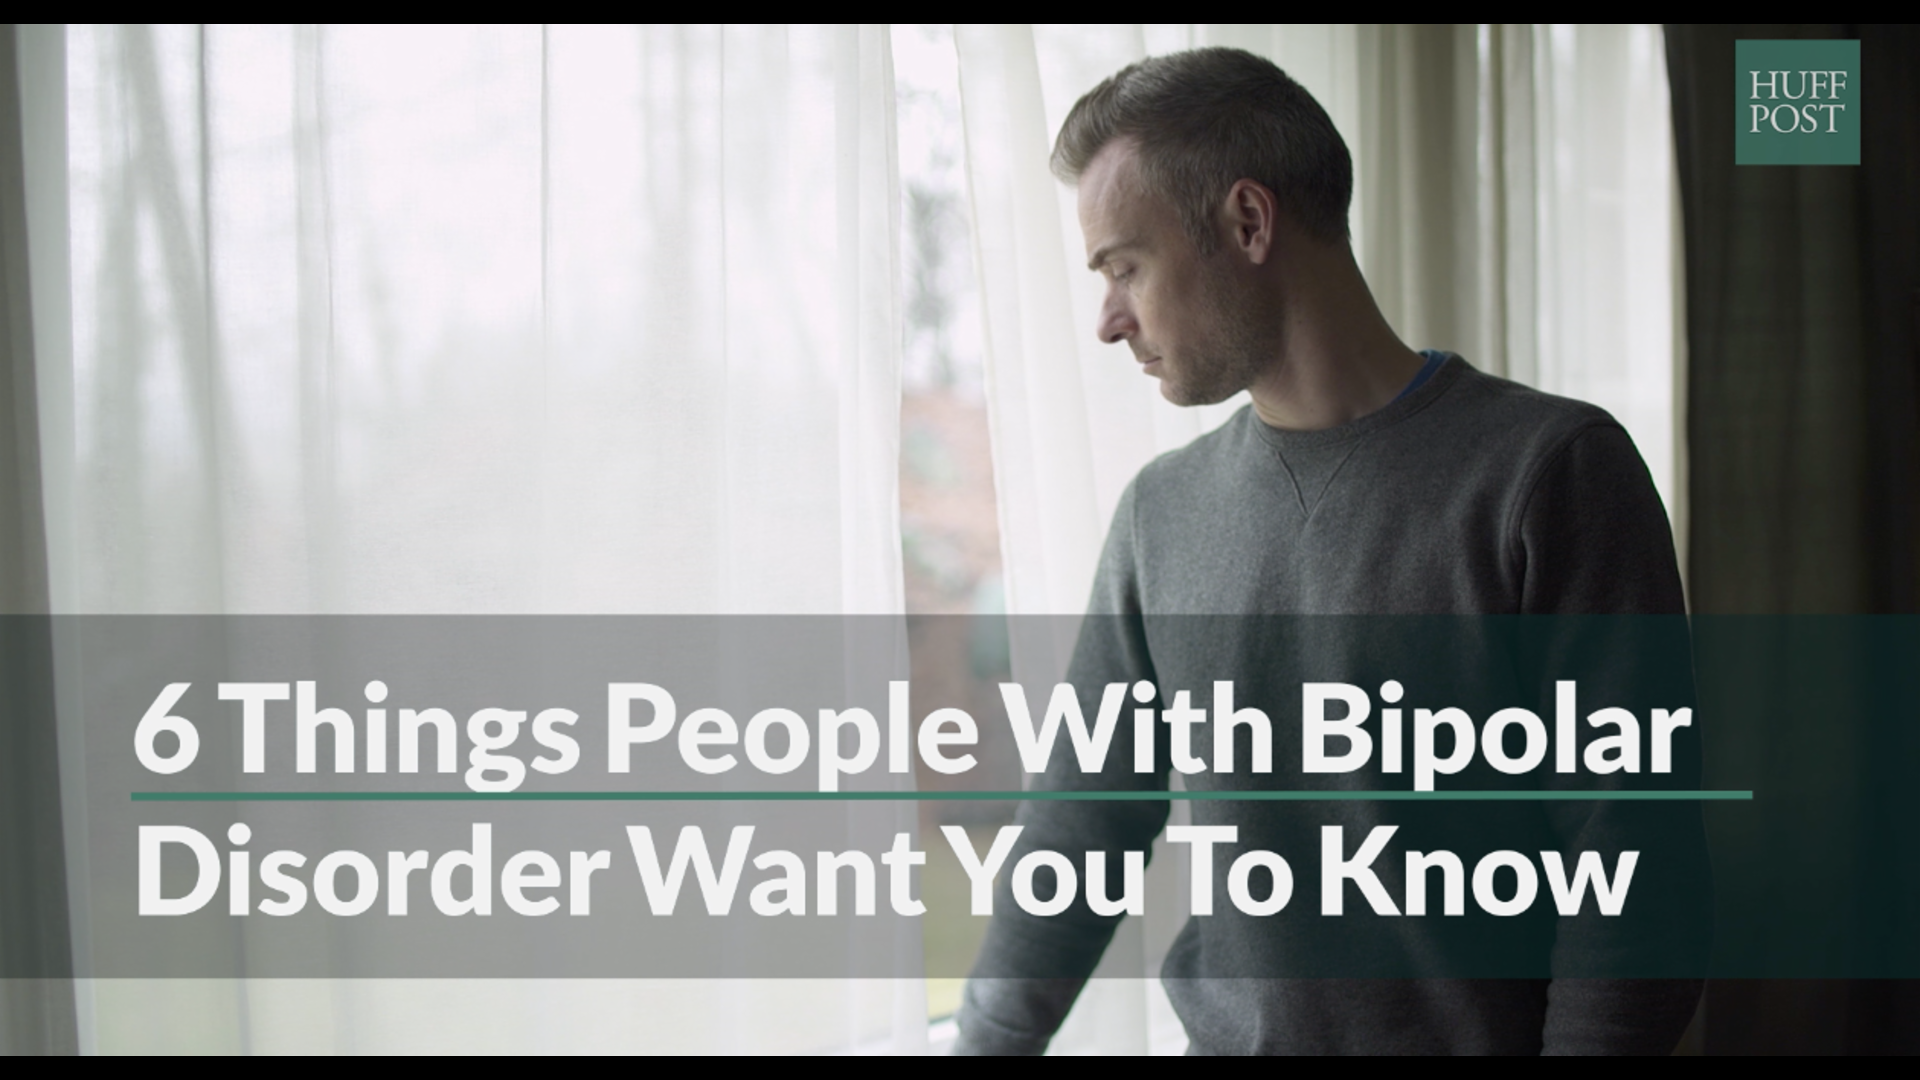 6 Things People With Bipolar Disorder Want You To Know: 'I Am Not Jekyll And Hyde'